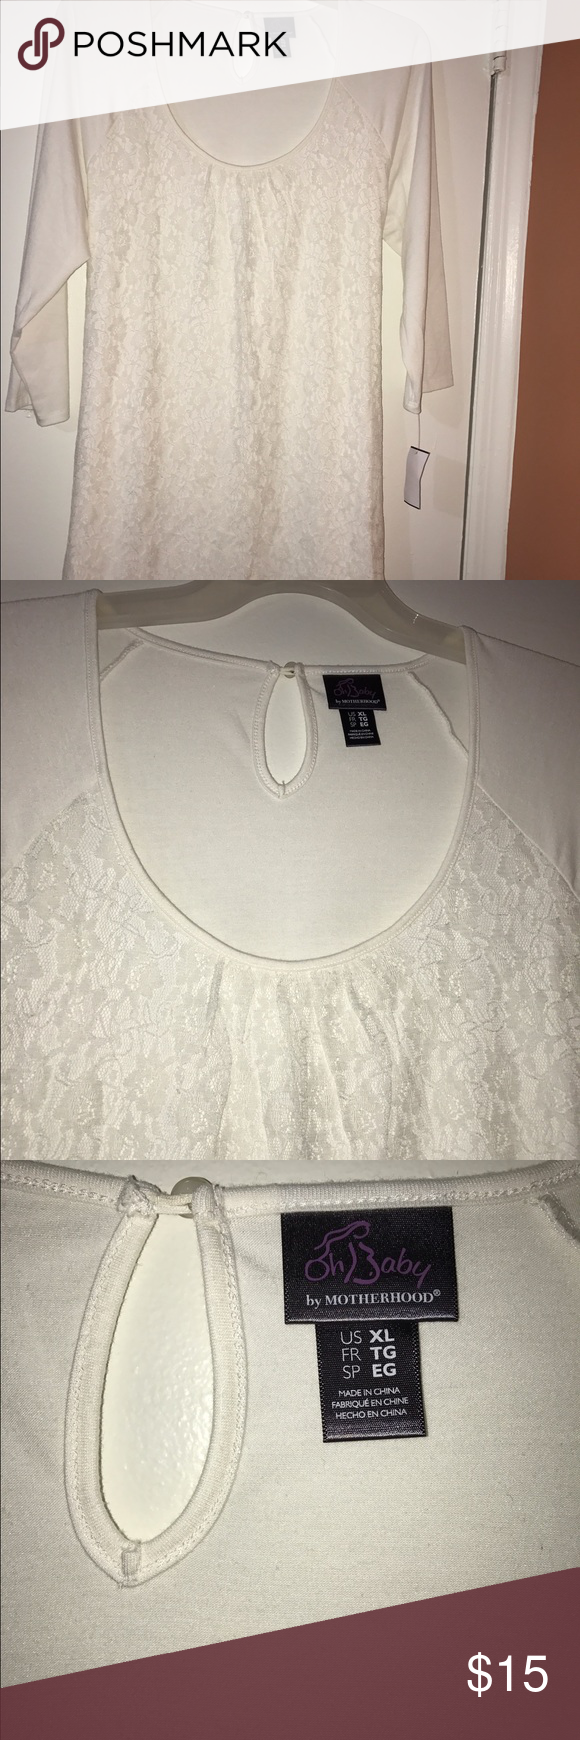 NWT White Lace maternity top XL I have a brand new with tags white long sleeve top with front lace maternity top Oh Baby by Motherhood Tops Tees - Long Sleeve